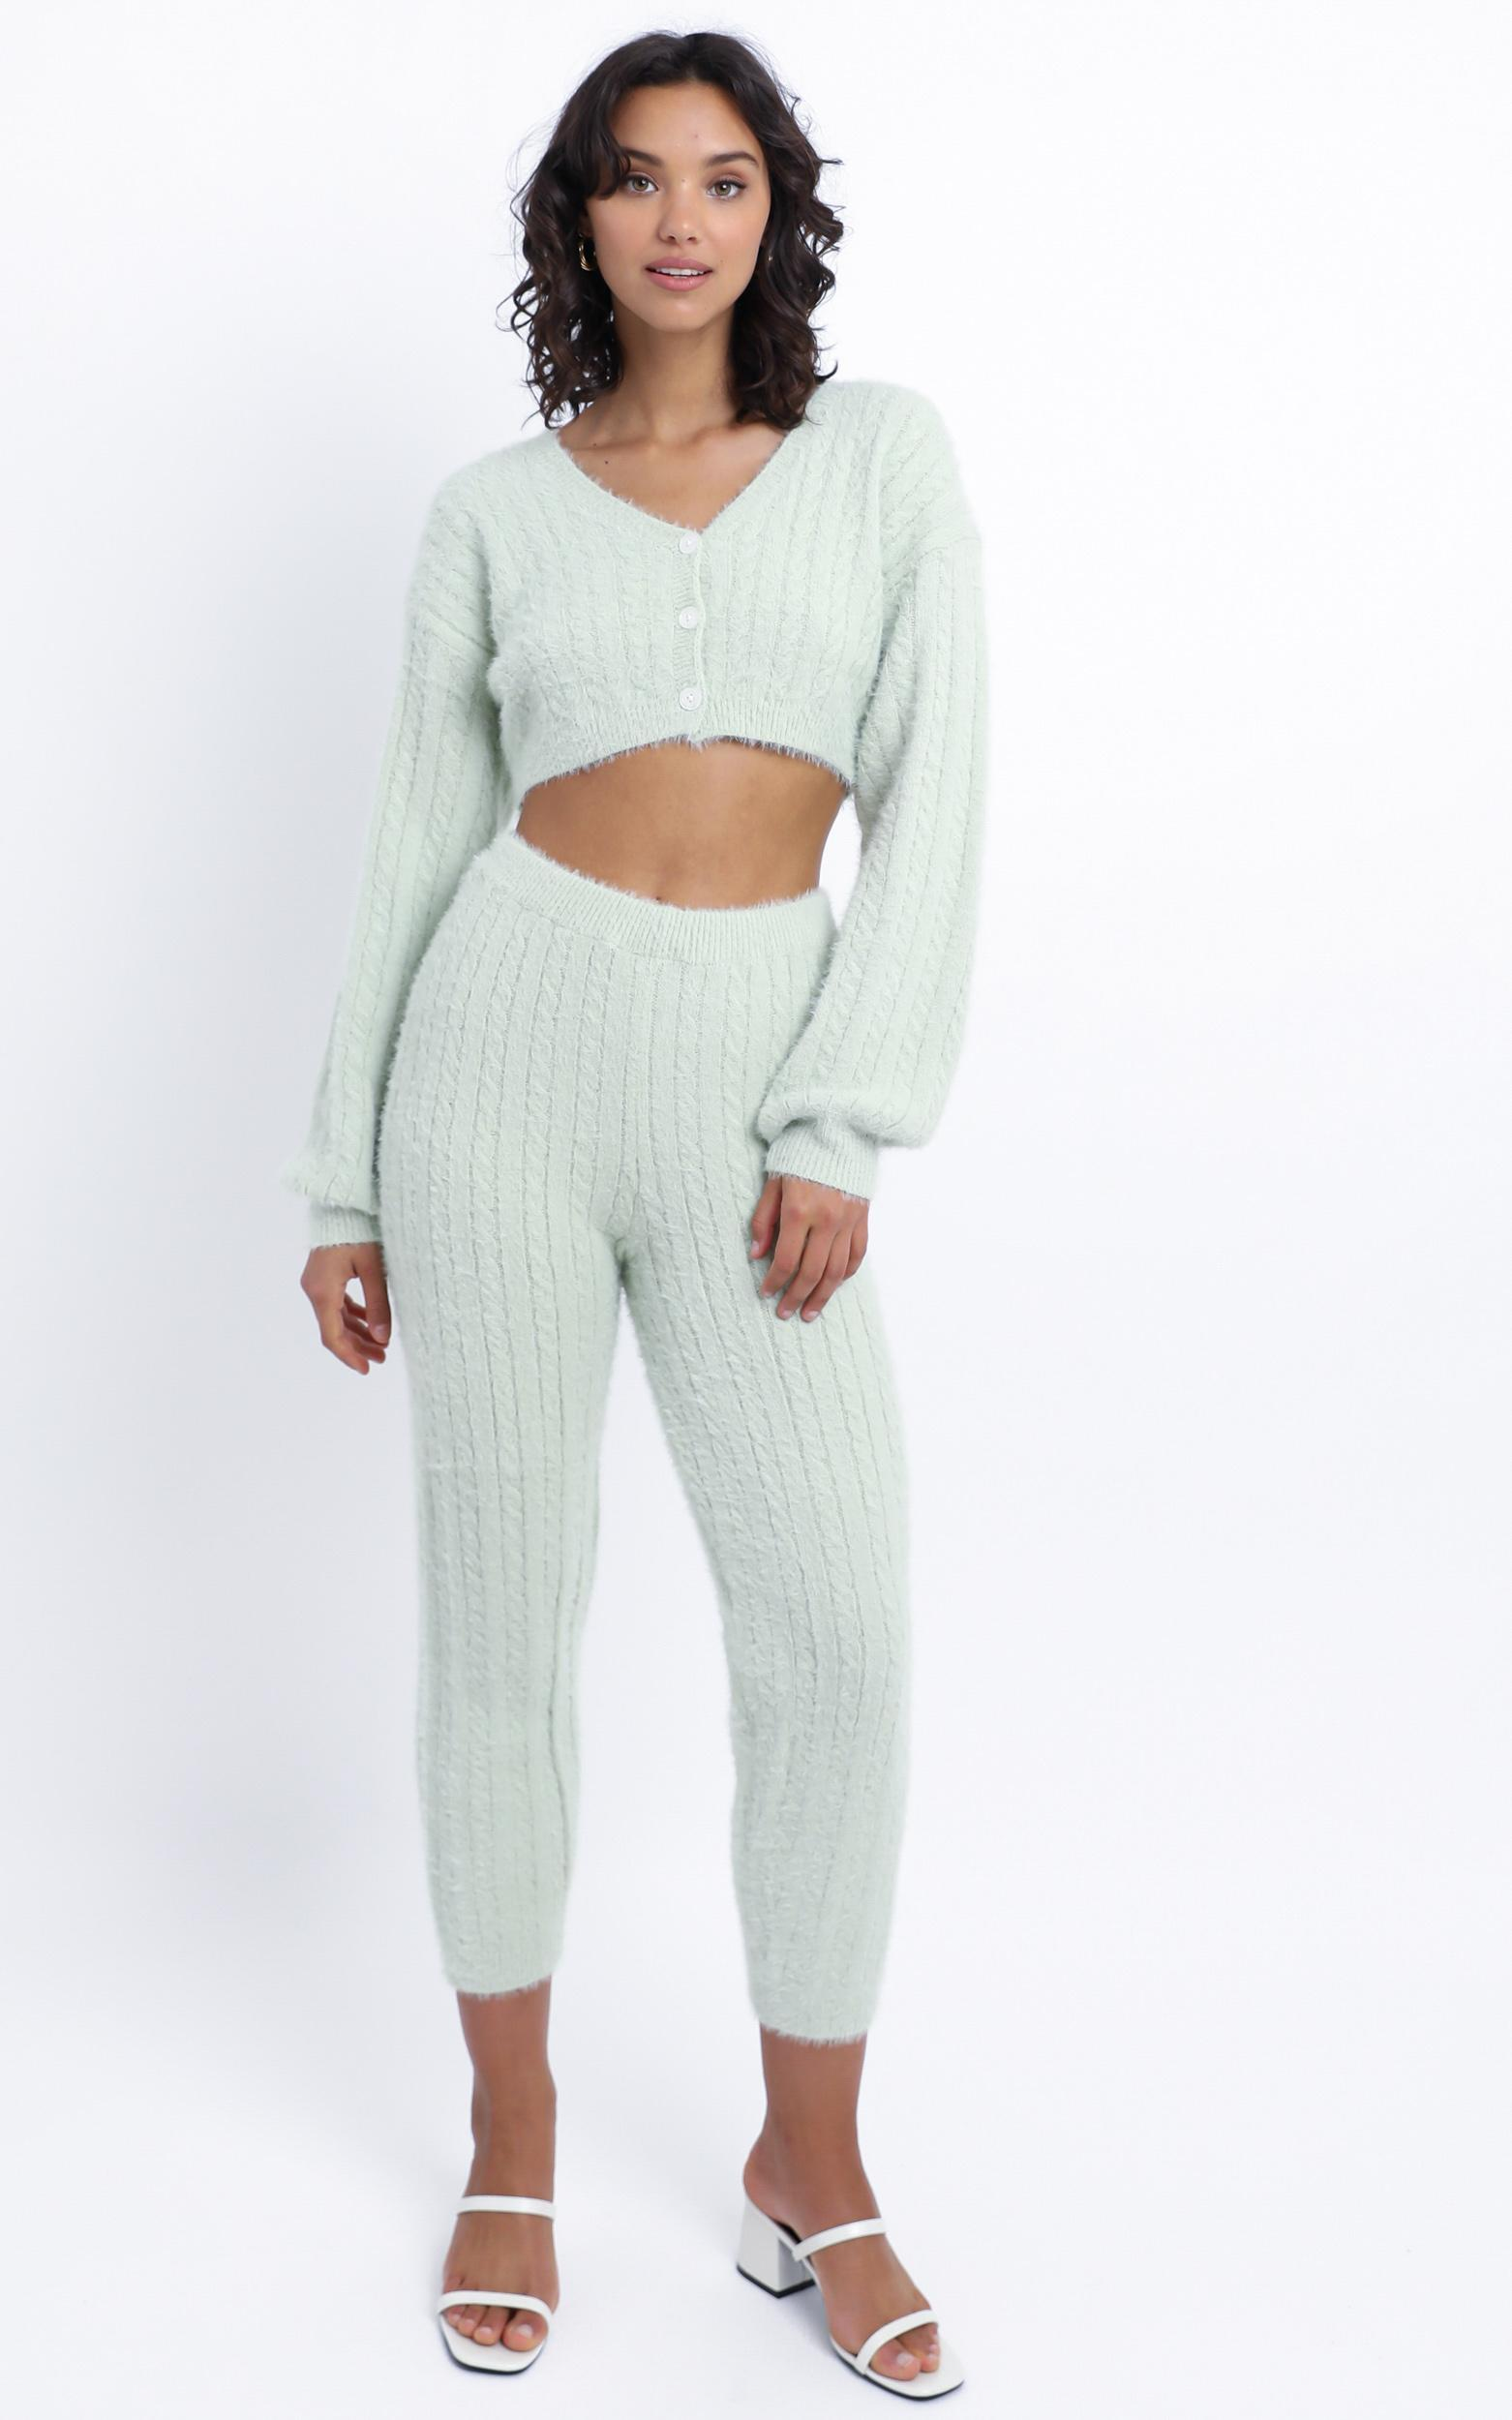 Eevi Two Piece Set in Mint - L/XL, Green, hi-res image number null